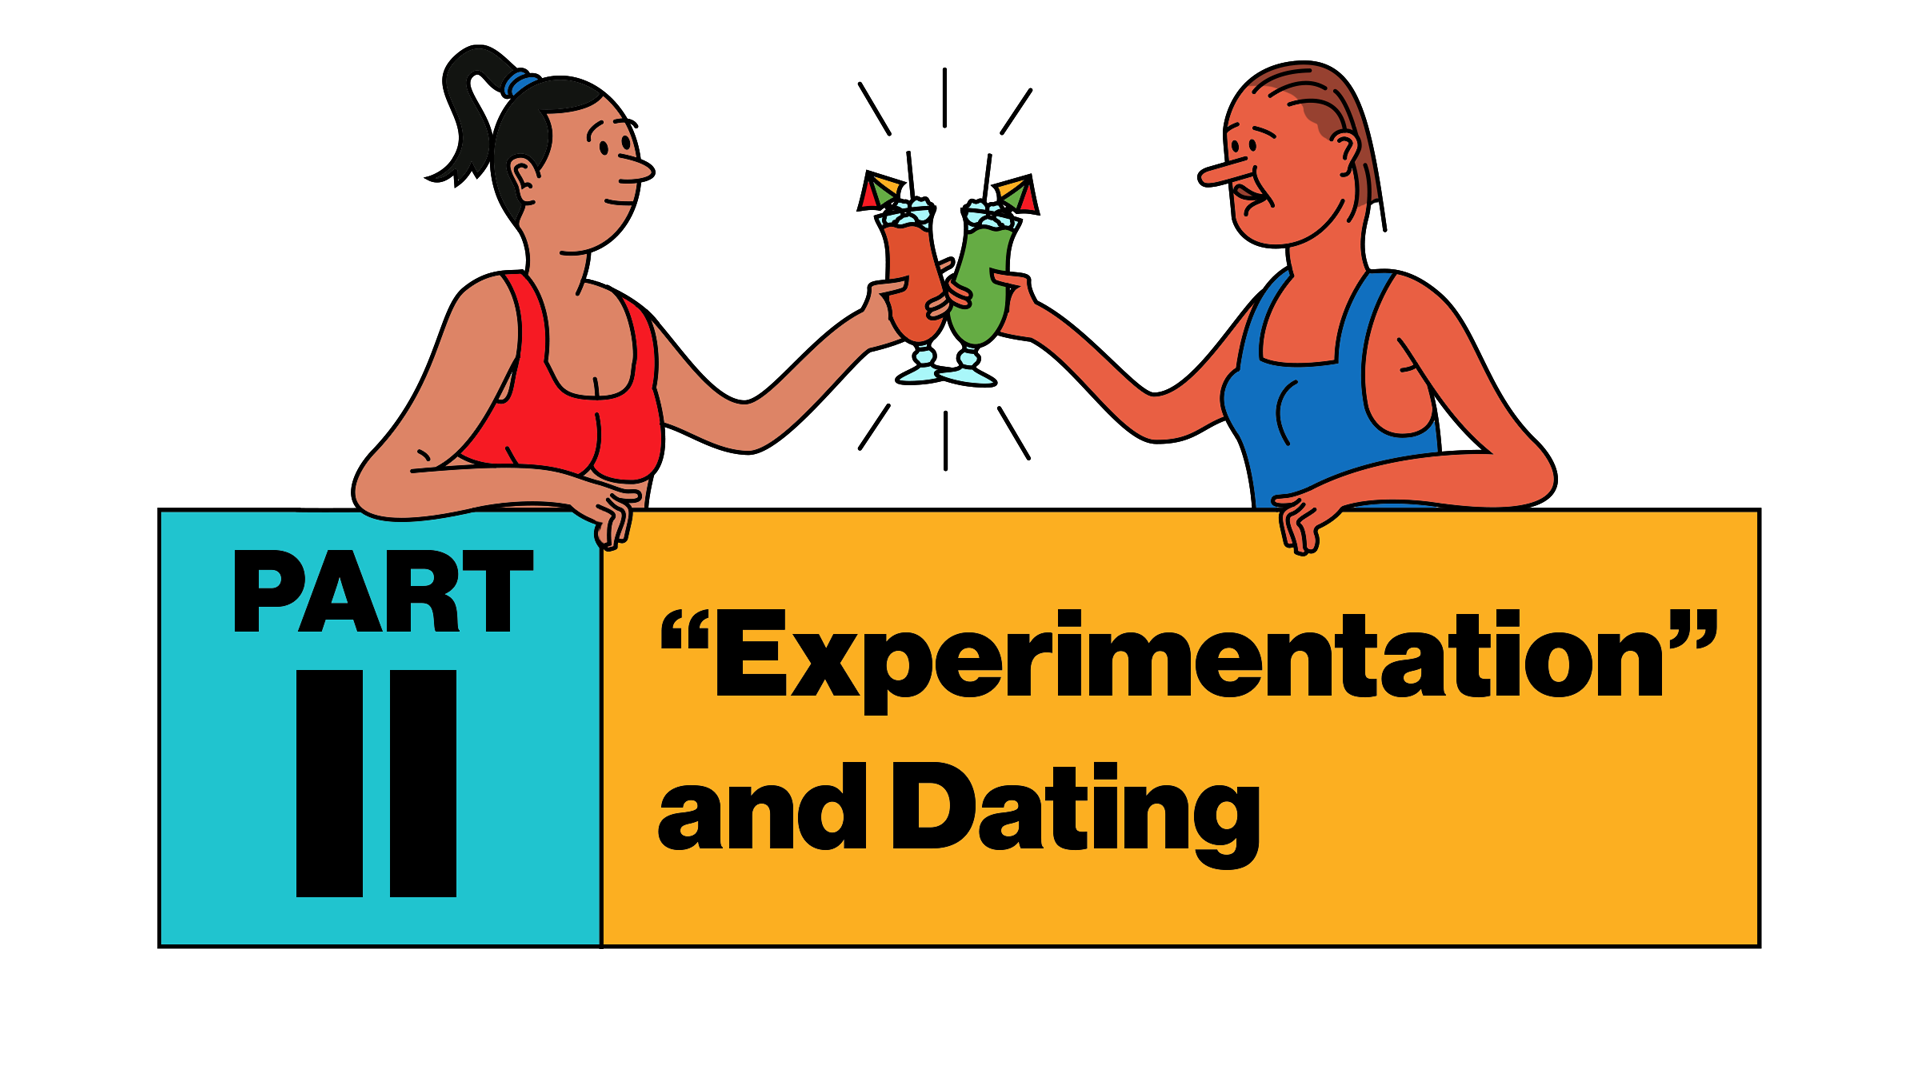 Part II: Experimentation & Dating